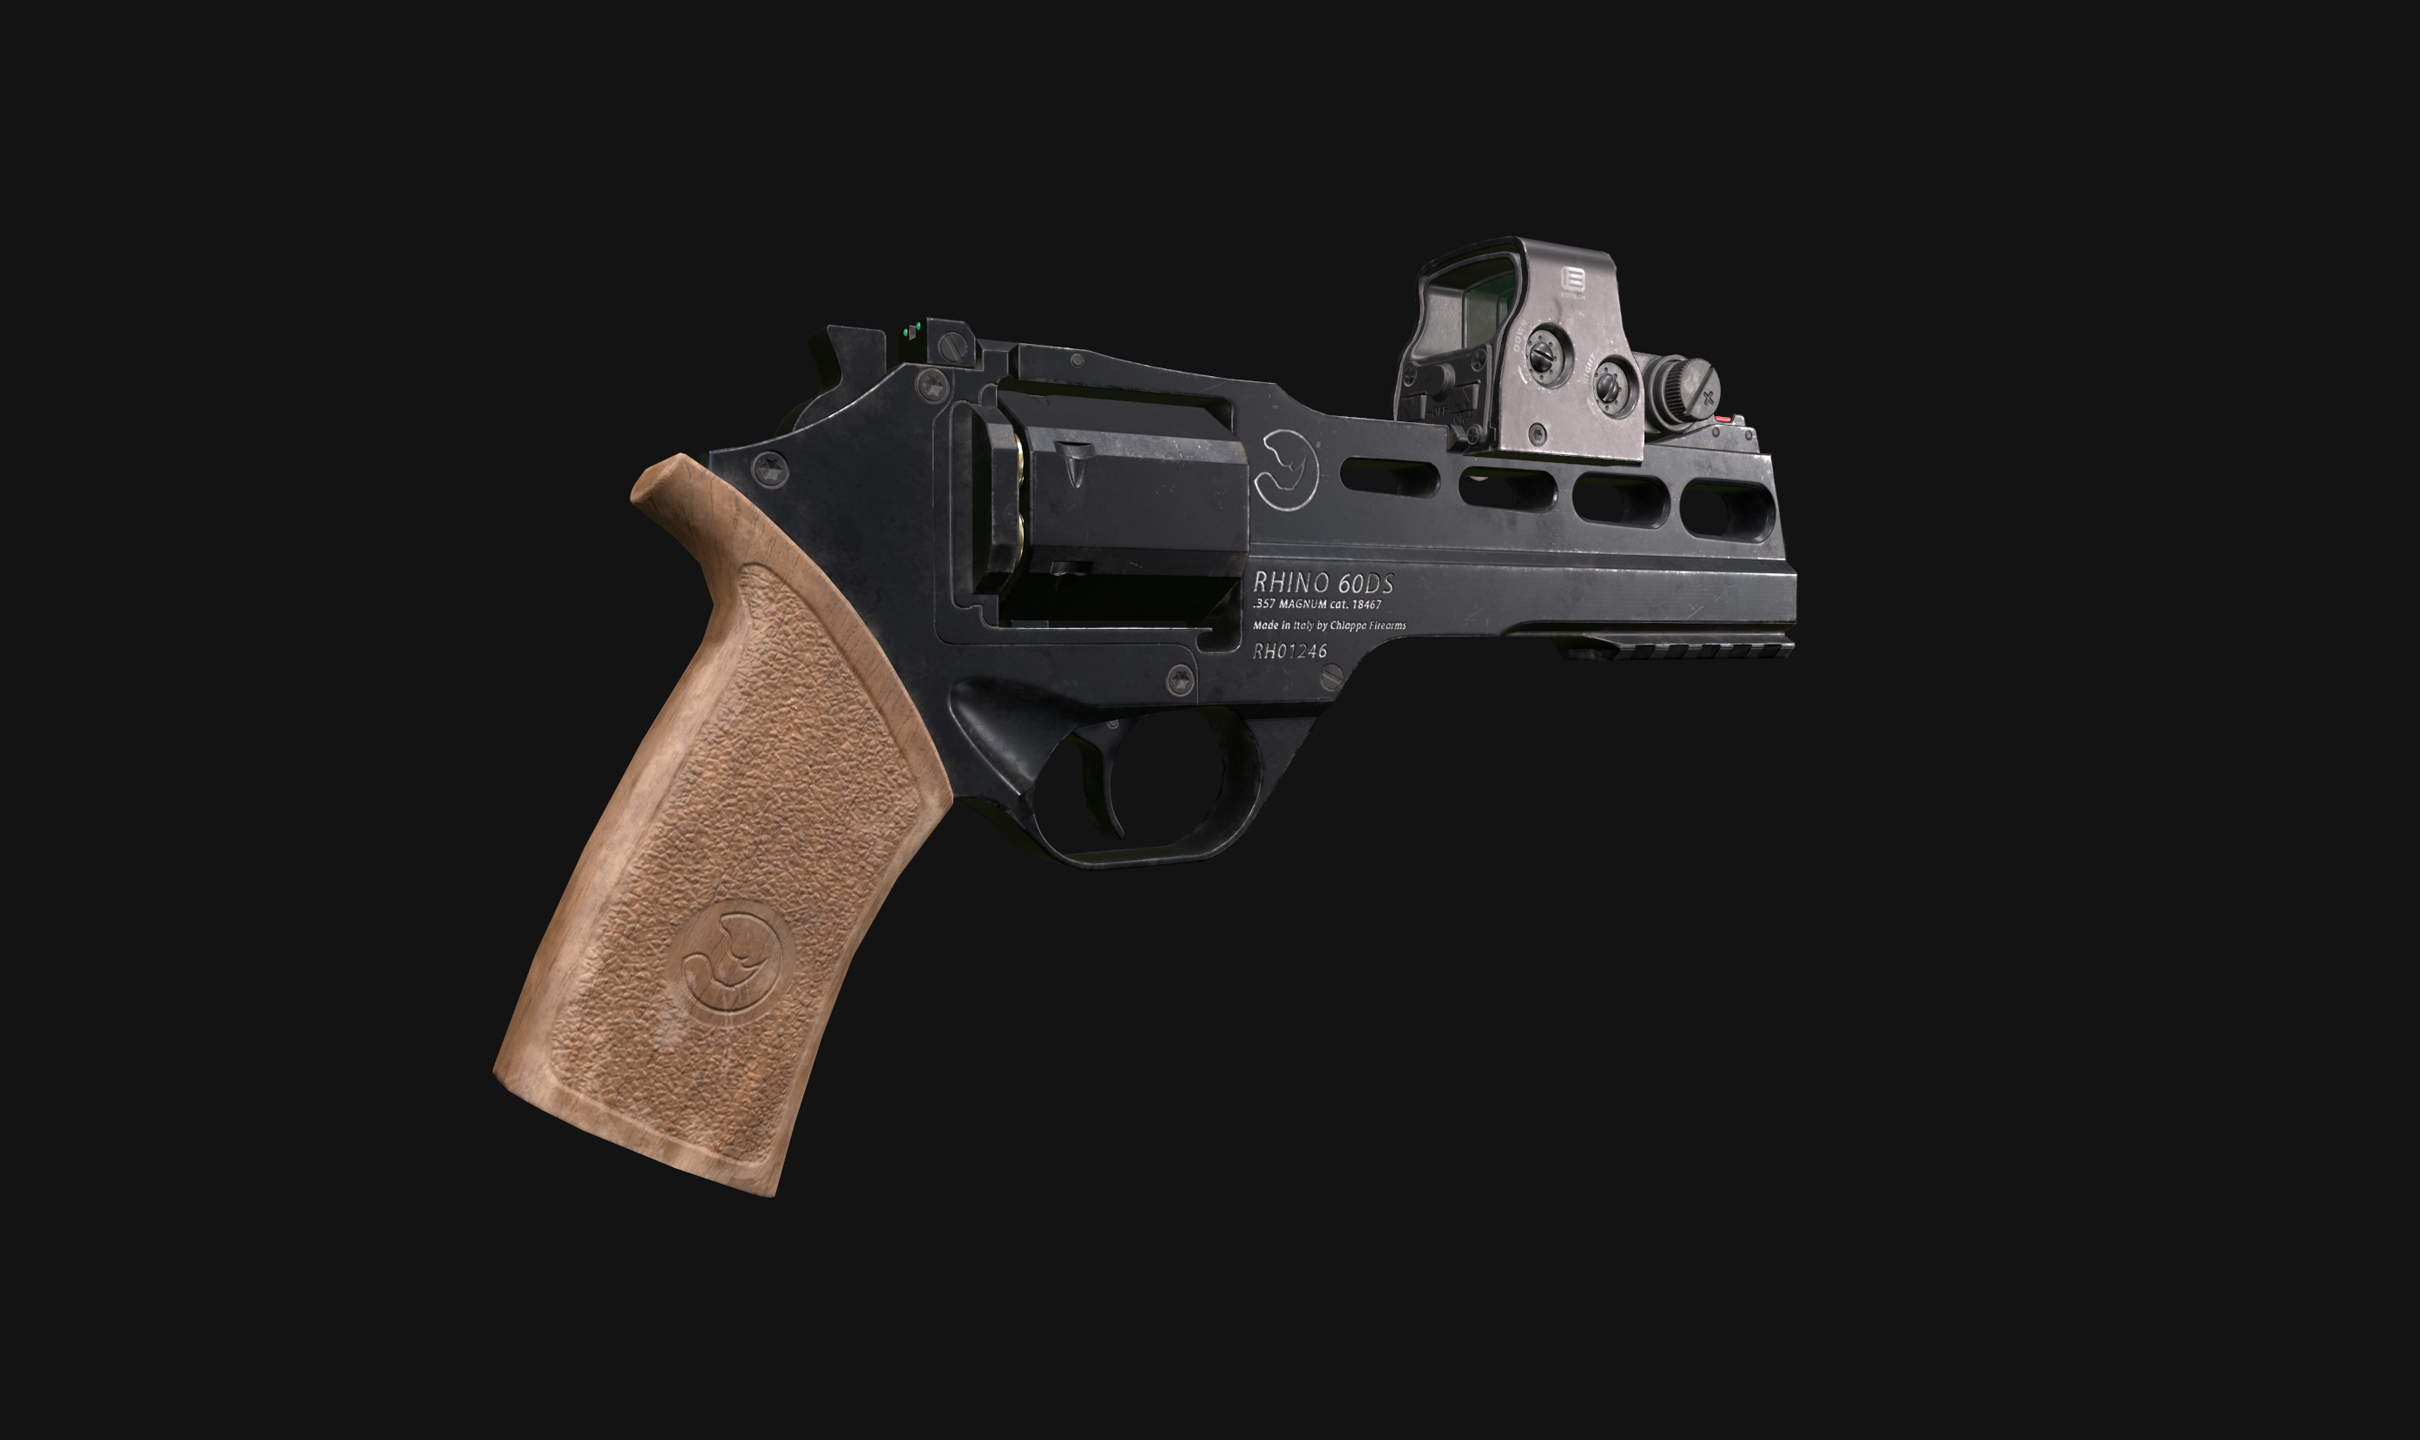 Low poly Chiappa Rhino with Eotech sight